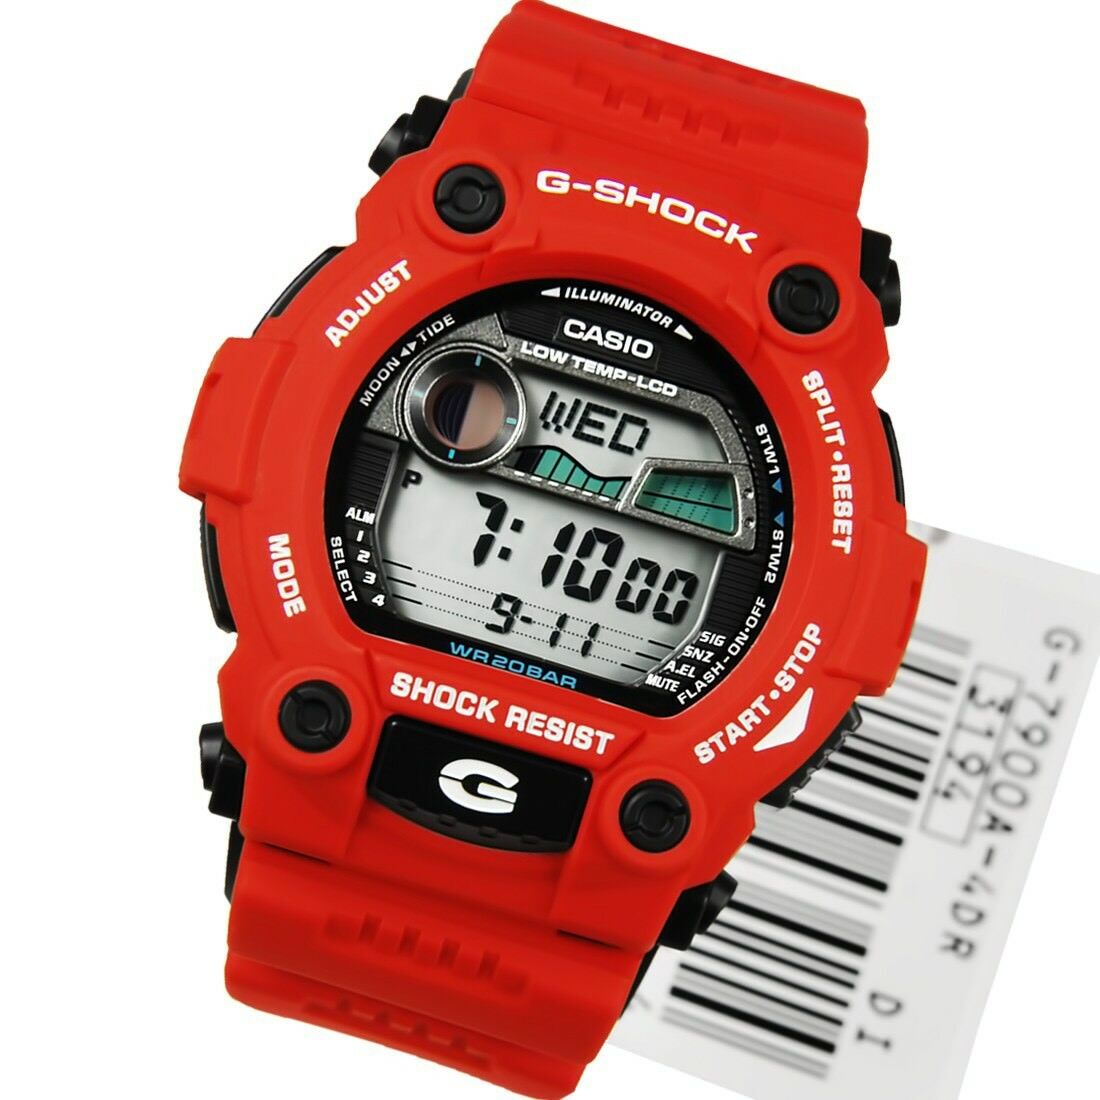 Brand New Casio G Shock G7900a 4 Red Digital Rescue Mens Watch Nwt Camouflage Gd 120cm 4dr 1 Of 1only 2 Available